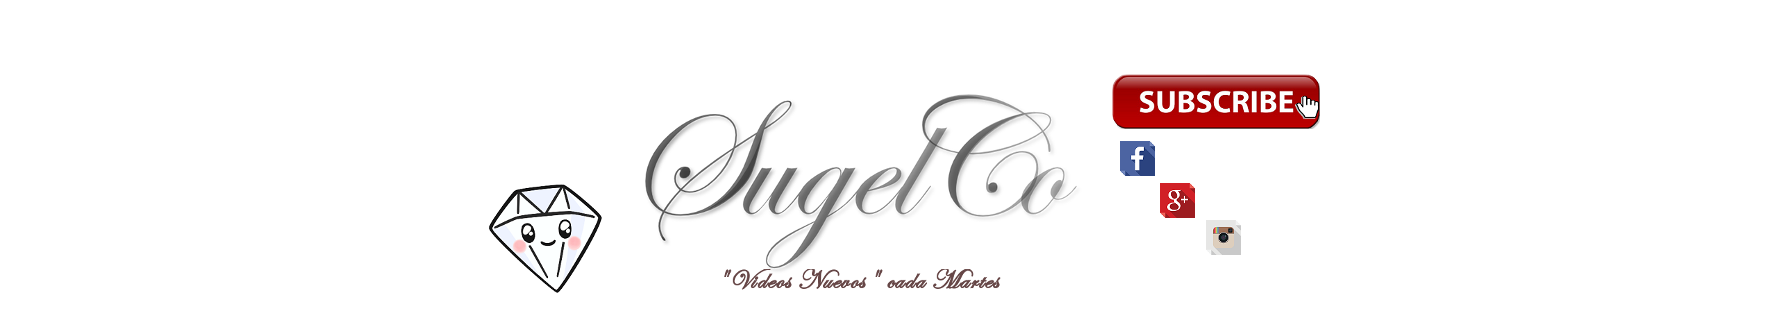 Sugel Co.